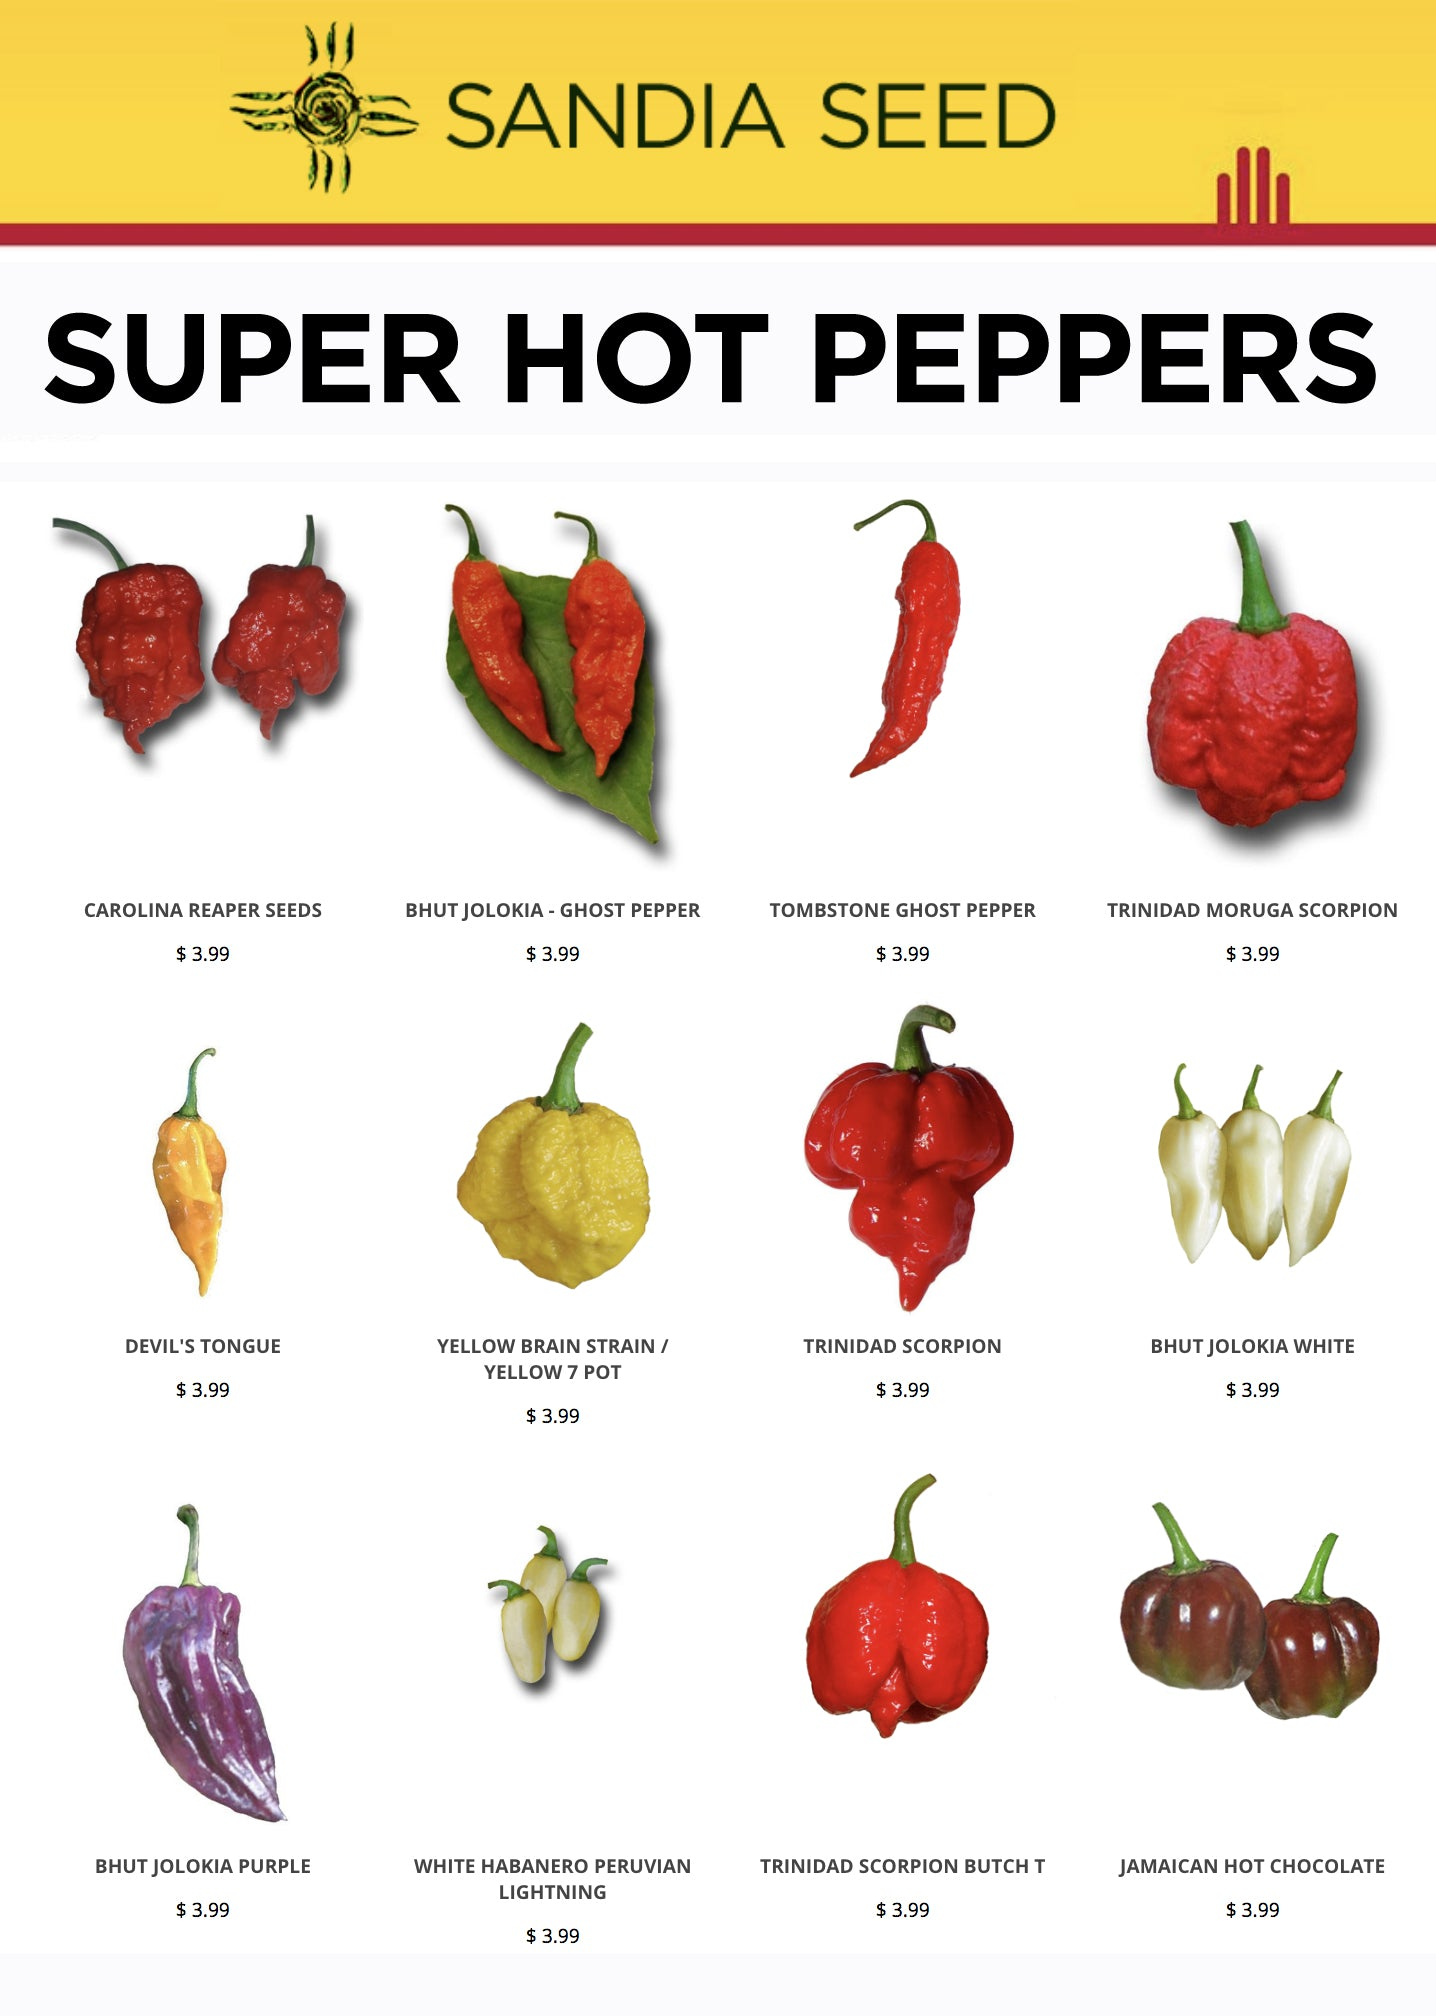 Where can I buy the hottest hot pepper seeds? SandiaSeed.com has you covered!!